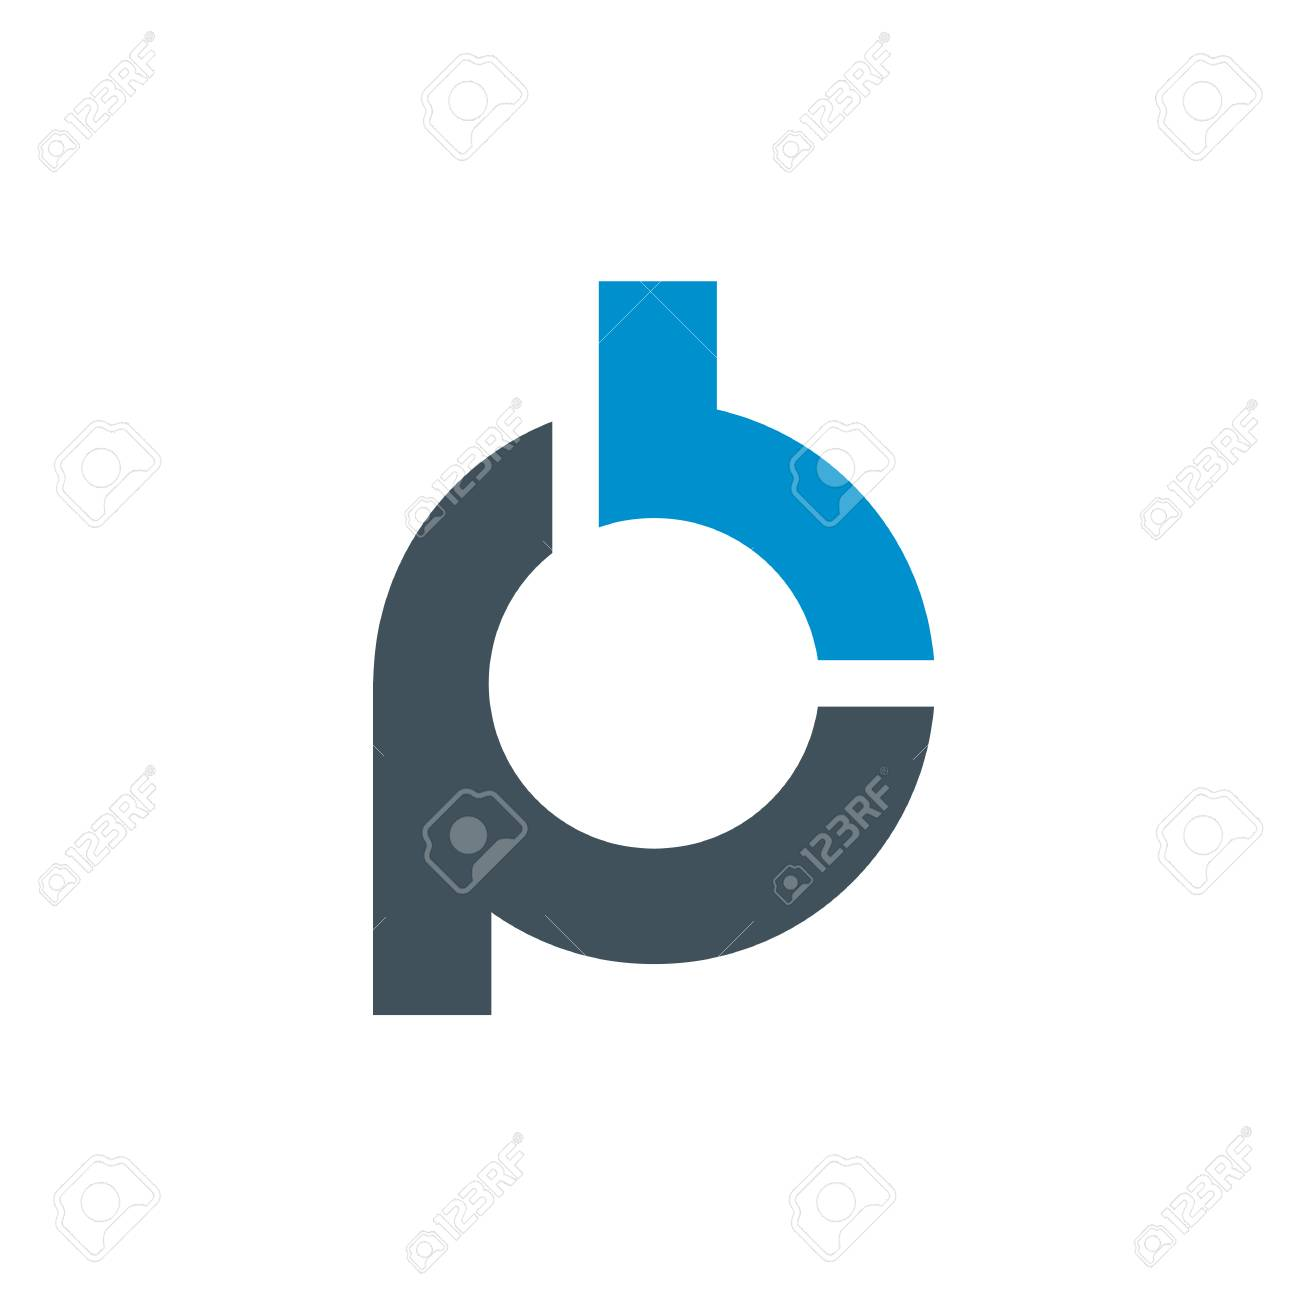 Logo of stylized Letter P and B  Clean and simple logo template,